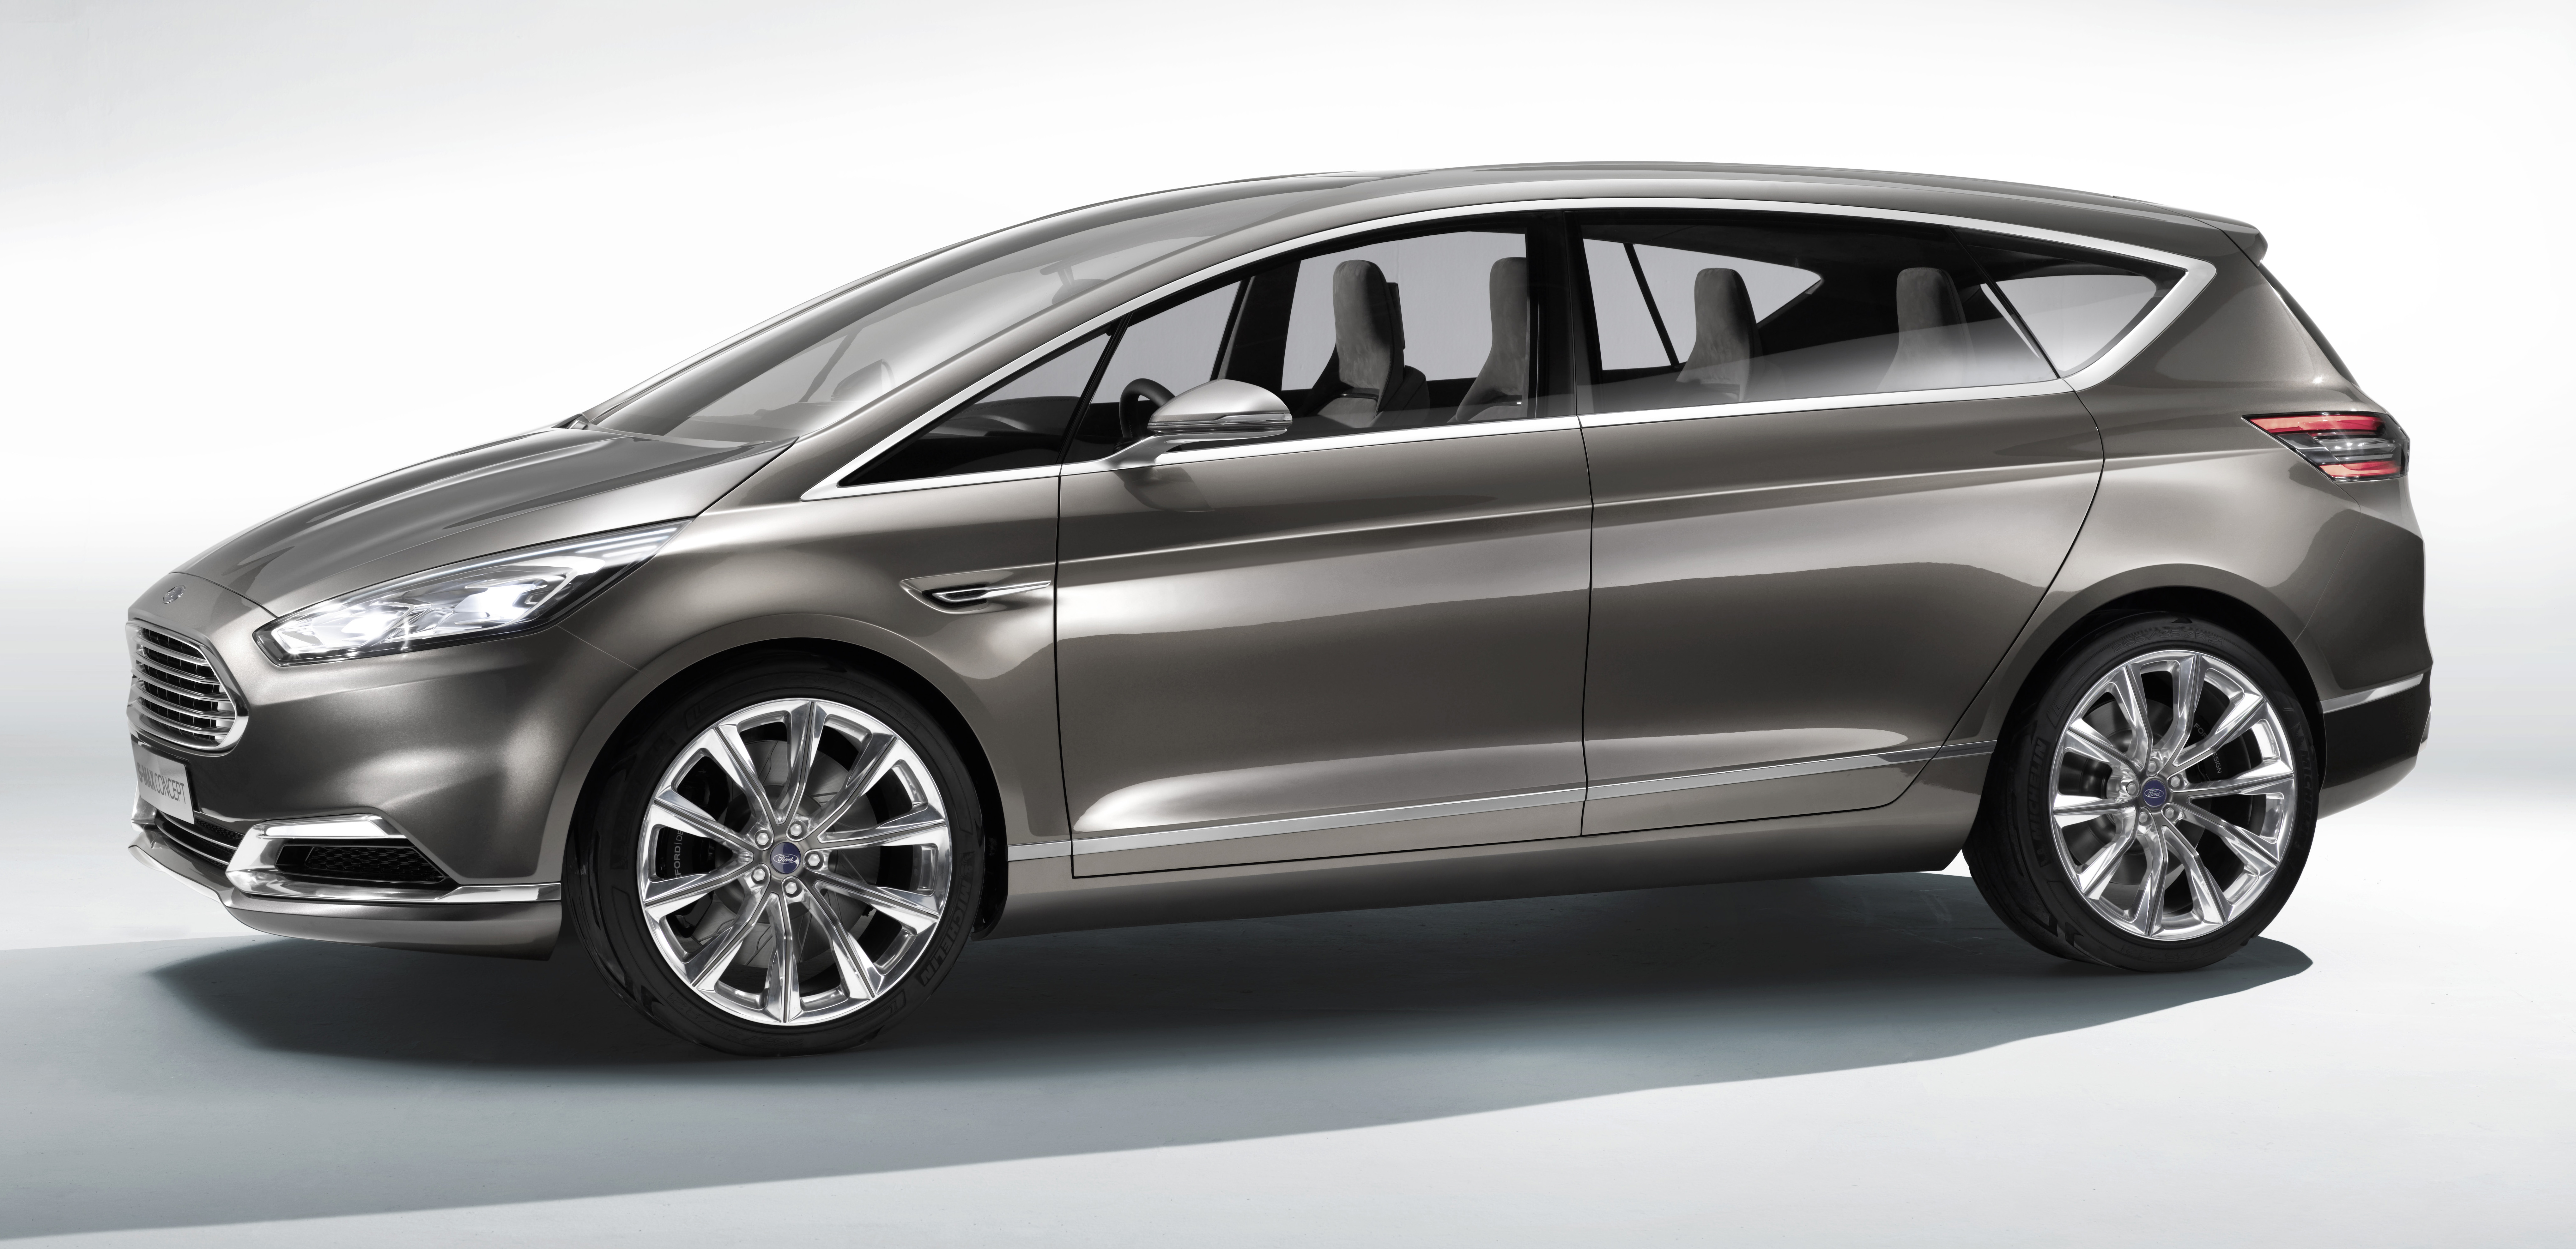 Ford S-MAX Concept - previewing the next-gen